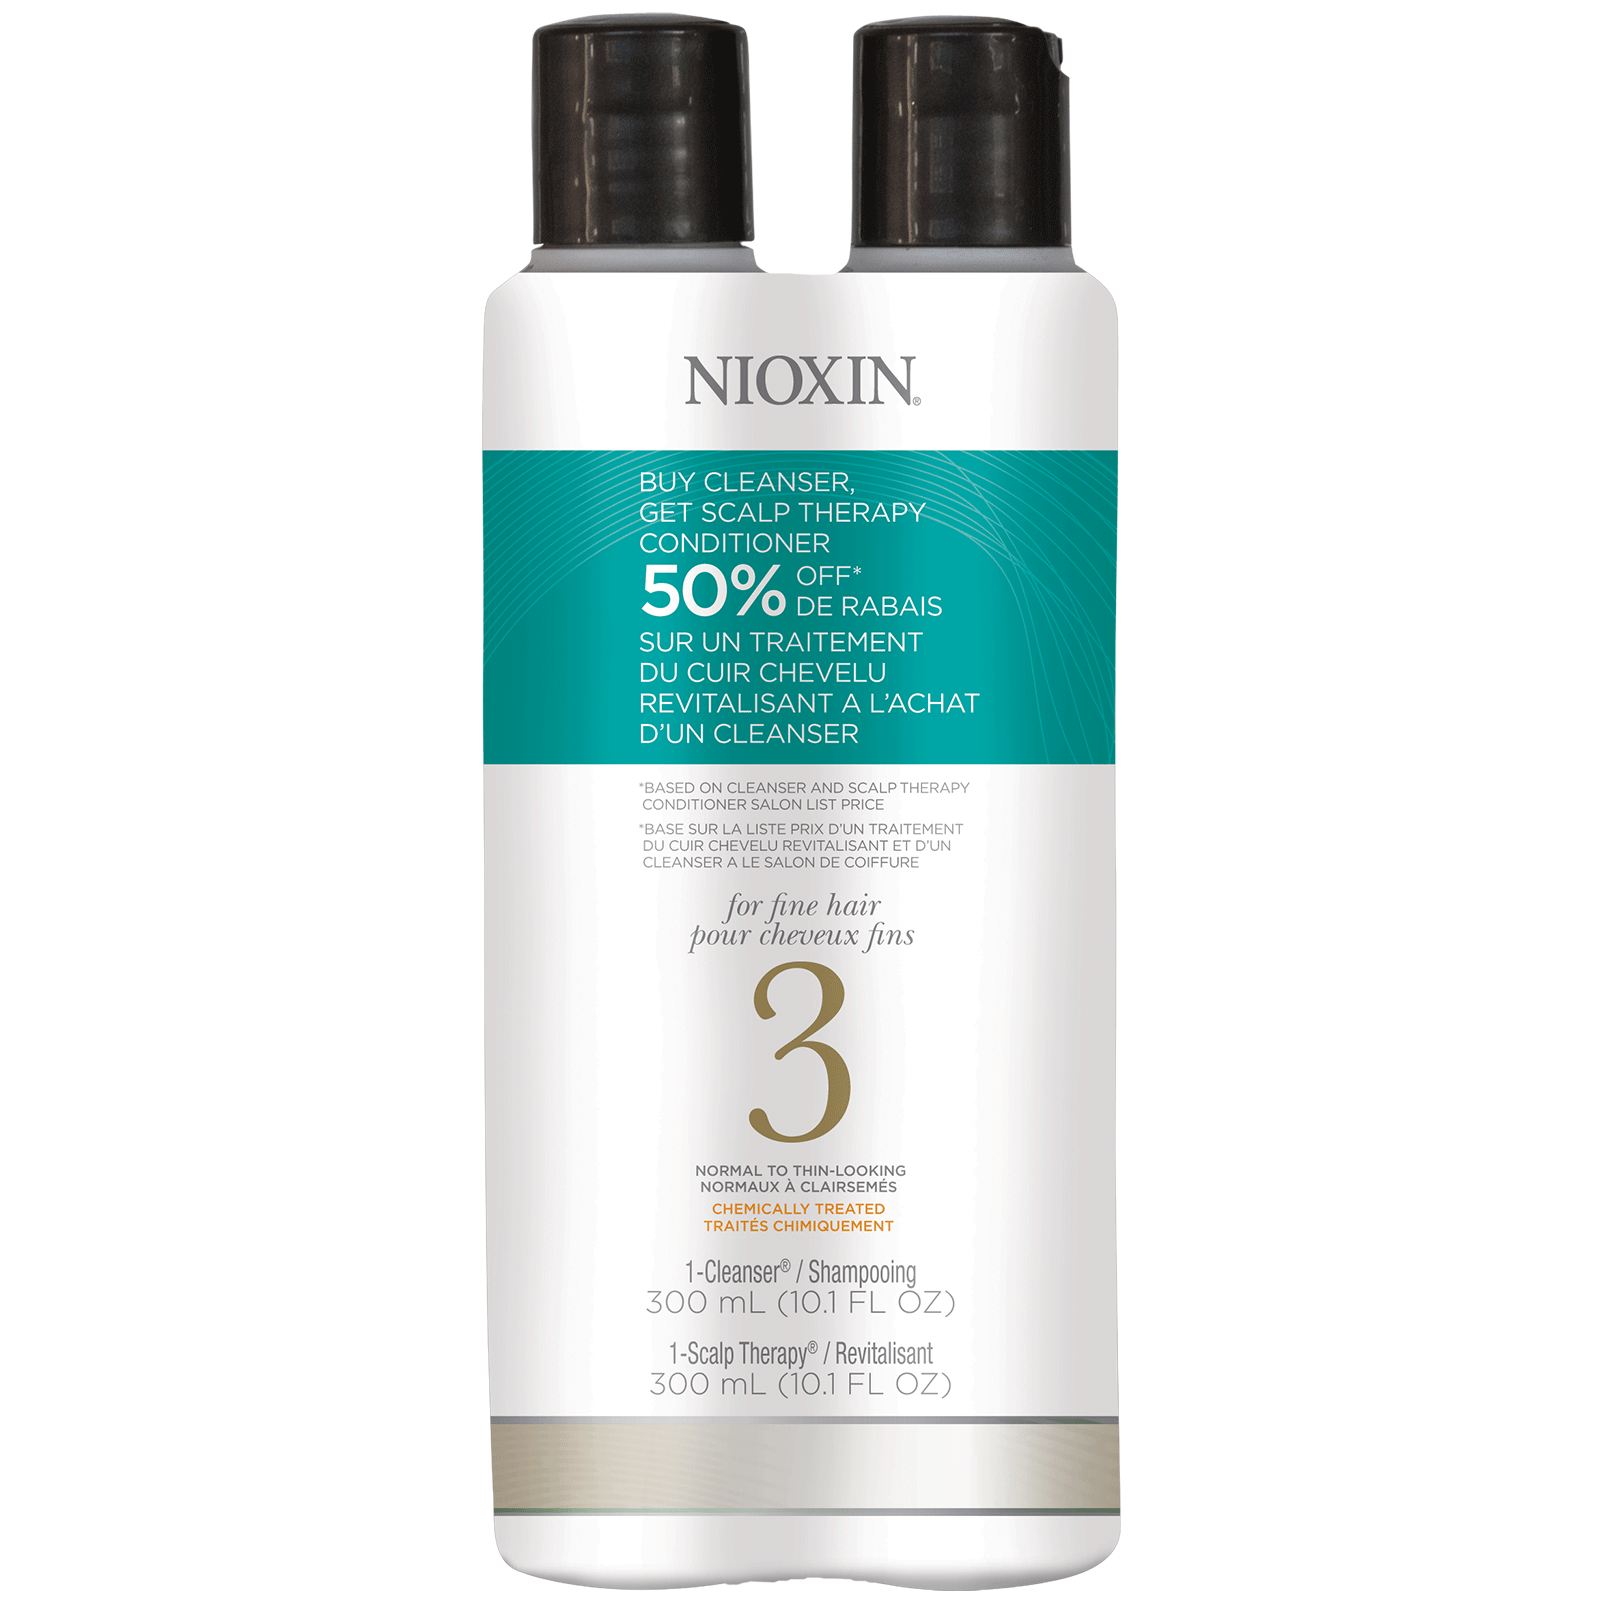 System 3 Cleanse & Scalp Therapy Duo